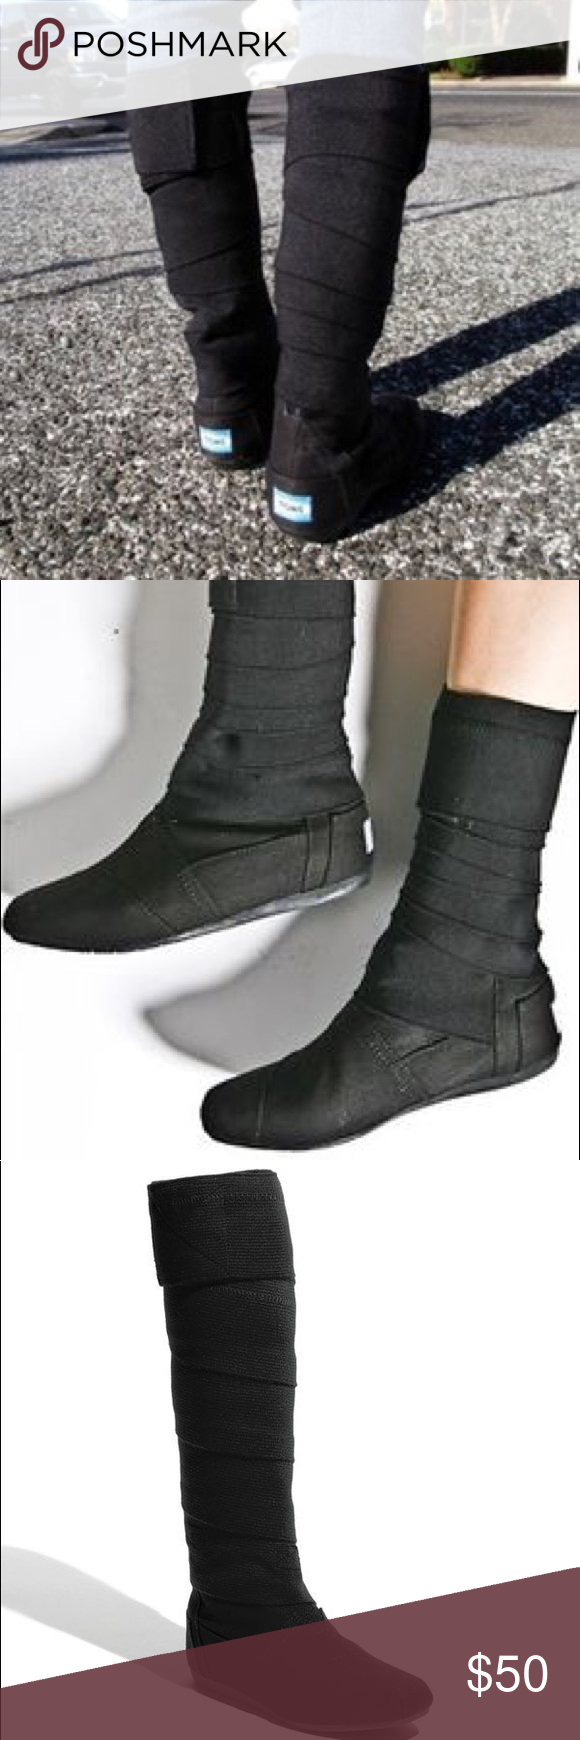 f309efe2b30 Toms wrap boots (vegan) Black tall or short wrap boots. Vegan Toms. Size 11  womens. Worn a few times. Toms Shoes Combat   Moto Boots